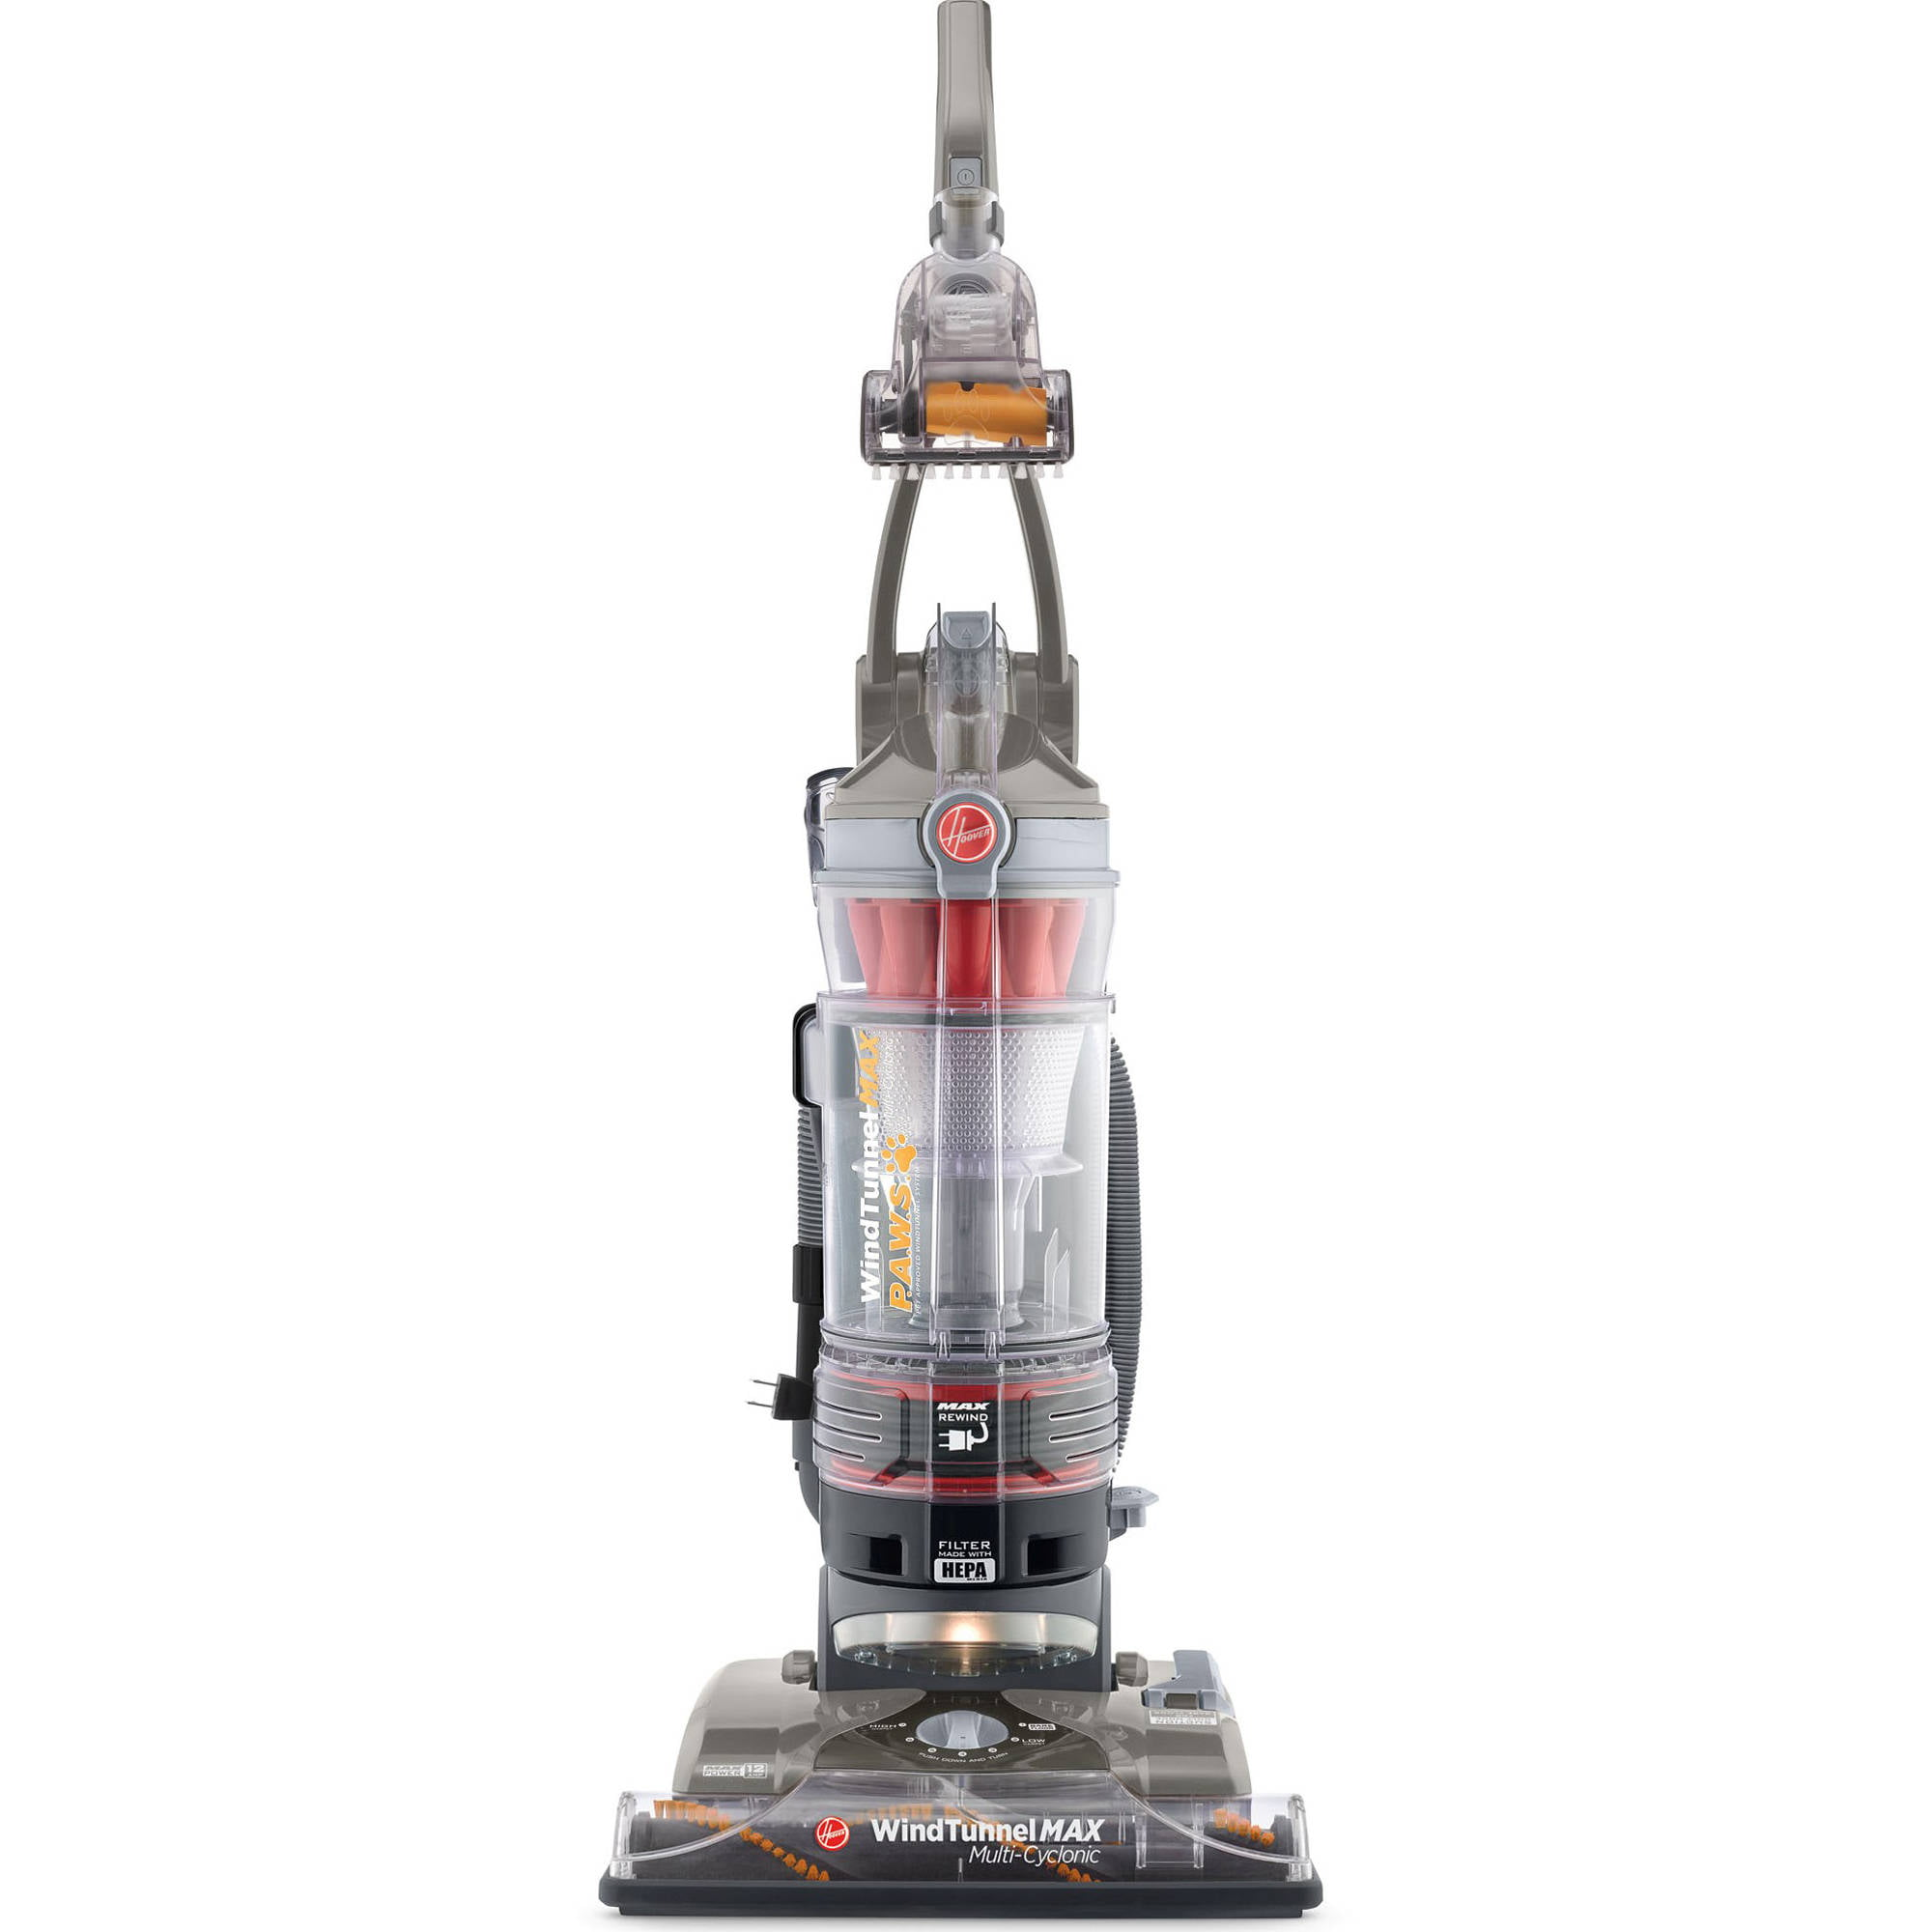 Hoover WindTunnel Max Pet Plus MultiCyclonic Bagless Upright Vacuum